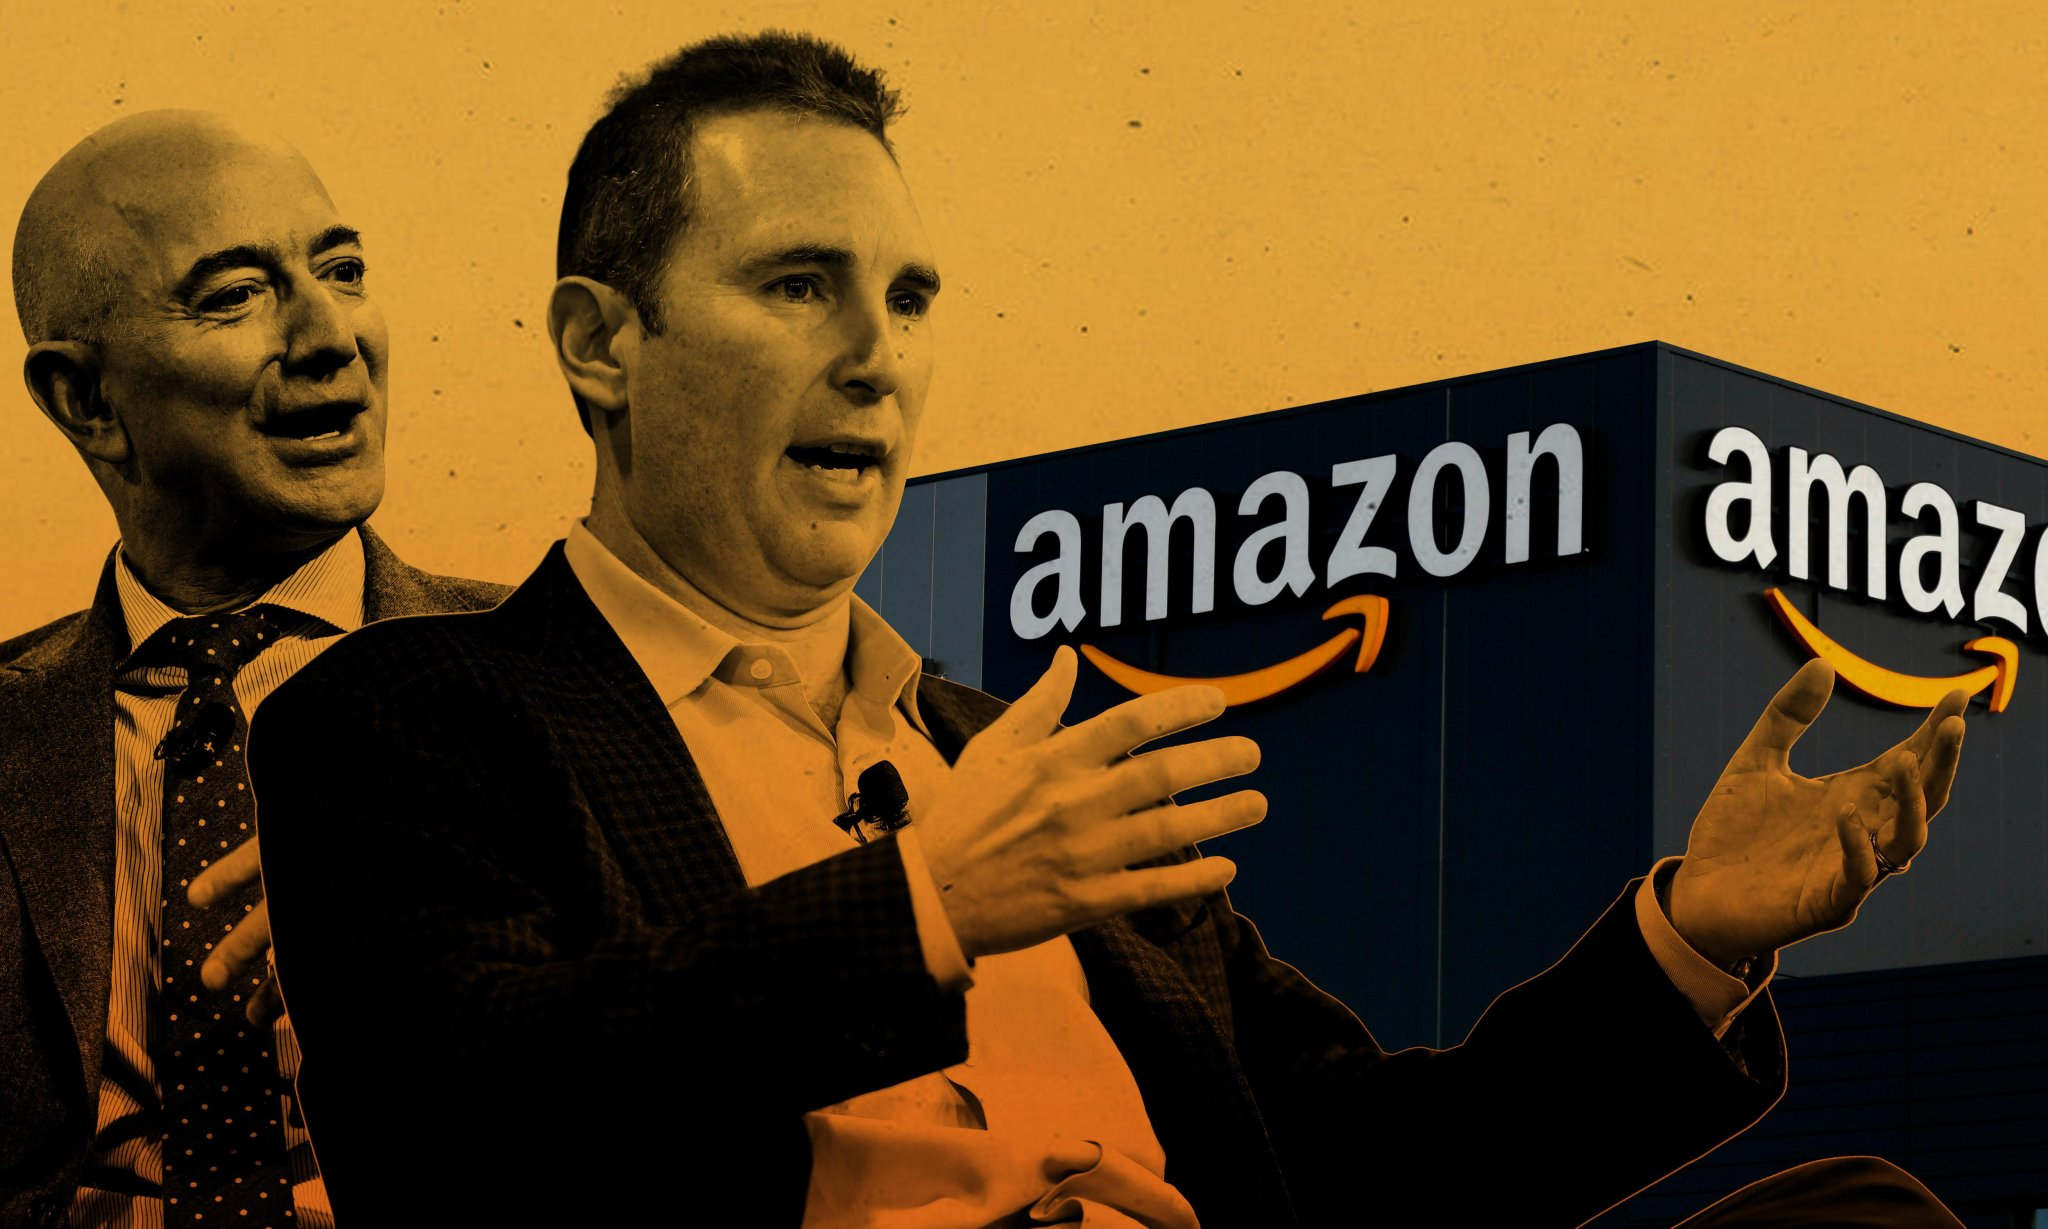 Andy Jassy steps out of the shadows – so who exactly is Amazon's new CEO?